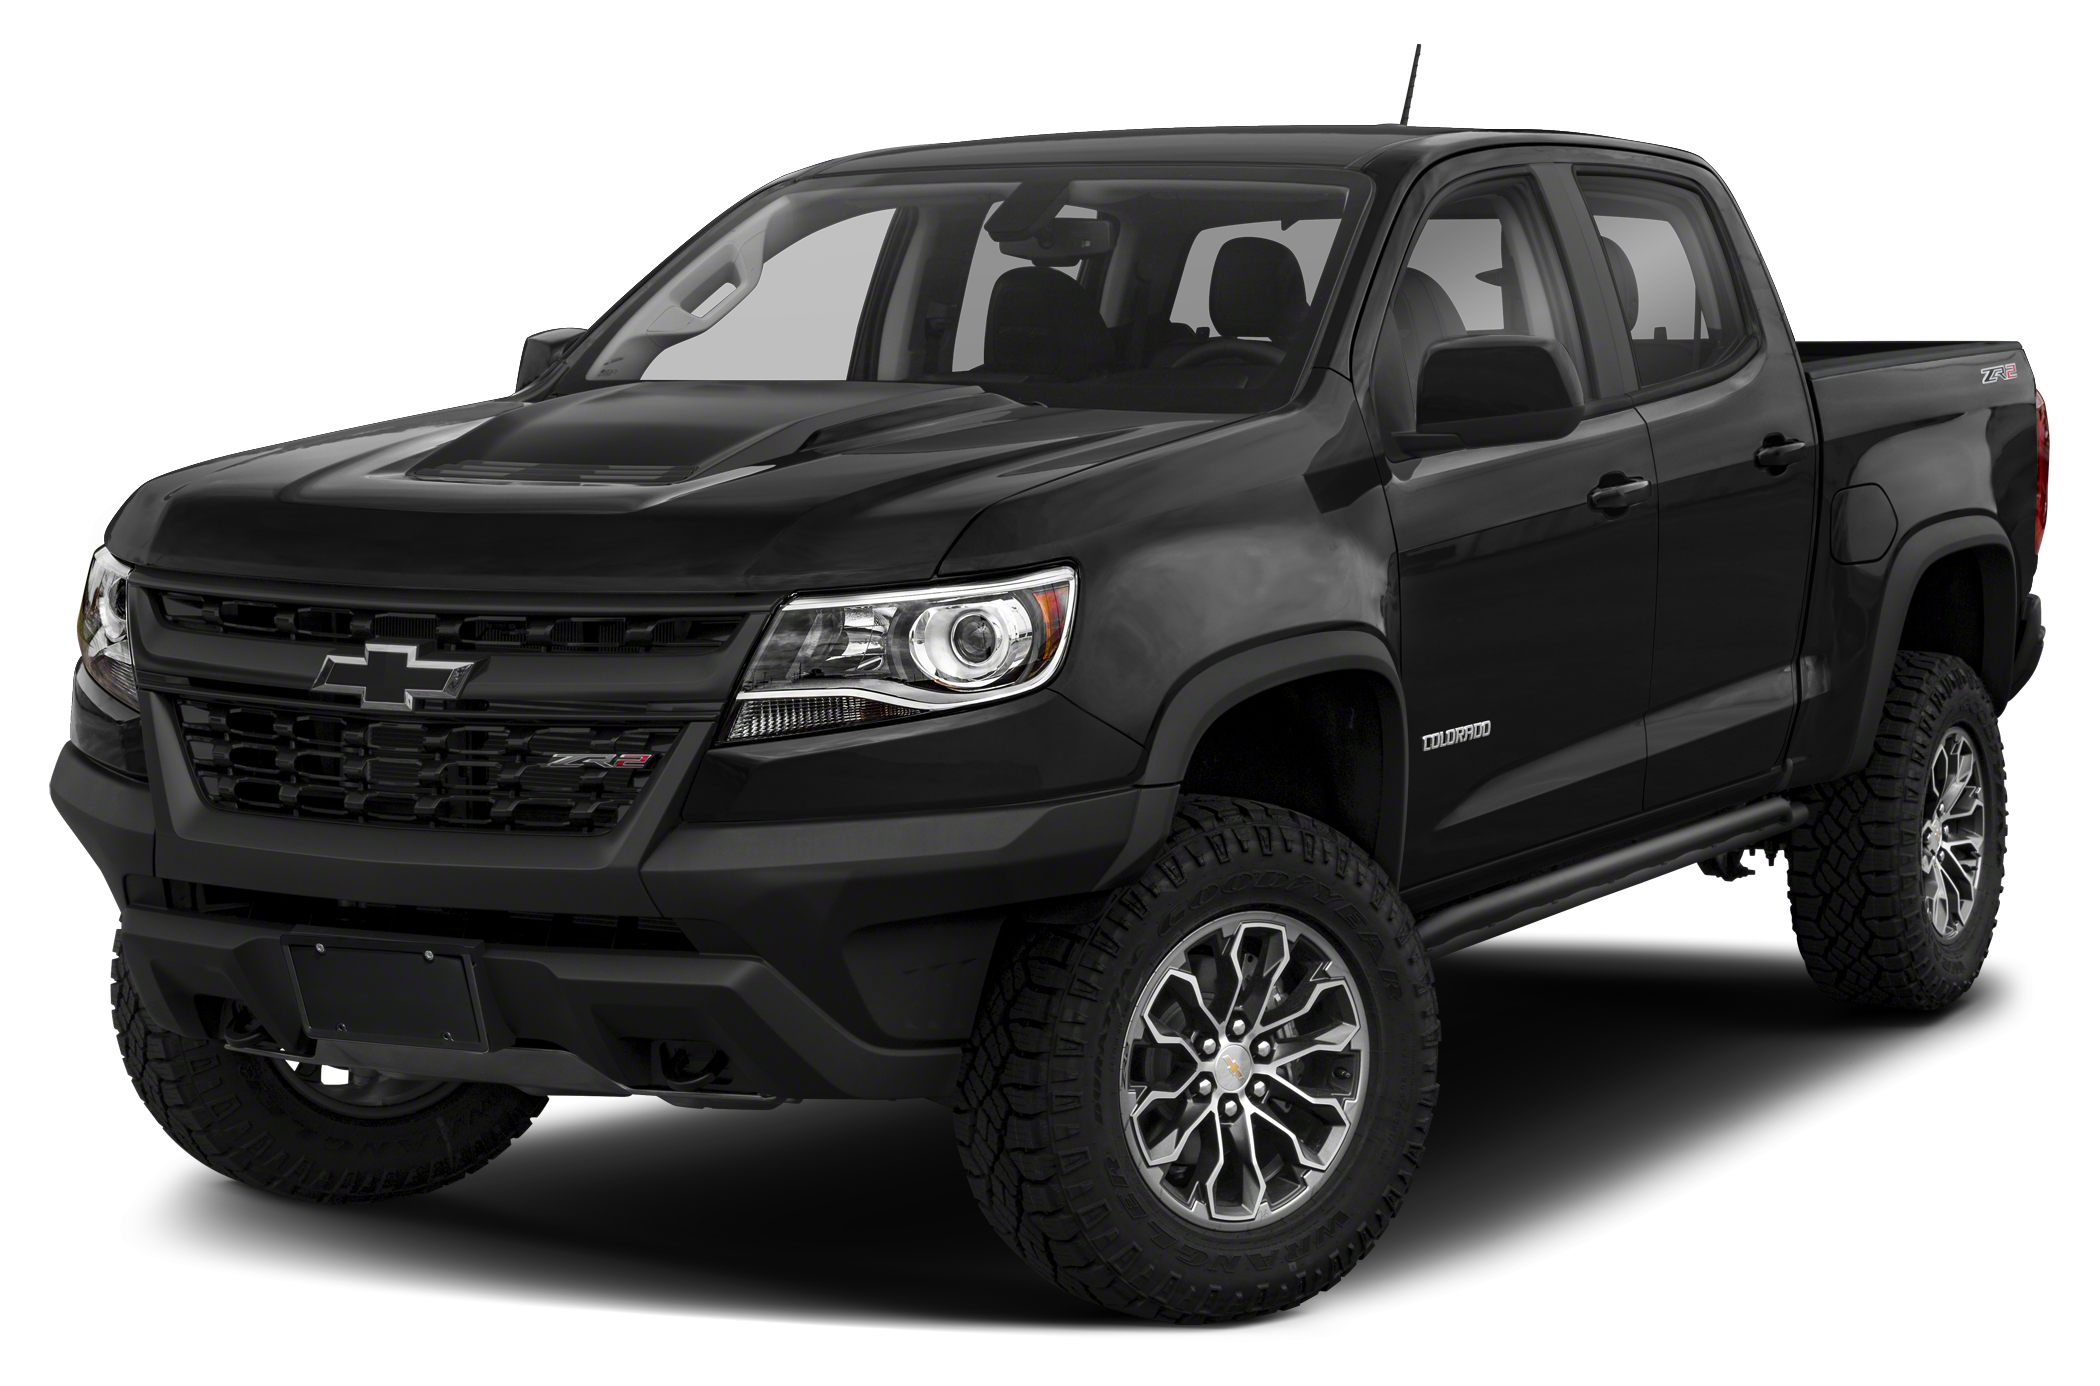 2020 Chevrolet Colorado Zr2 4x4 Crew Cab 5 Ft Box 128 3 In Wb Specs And Prices